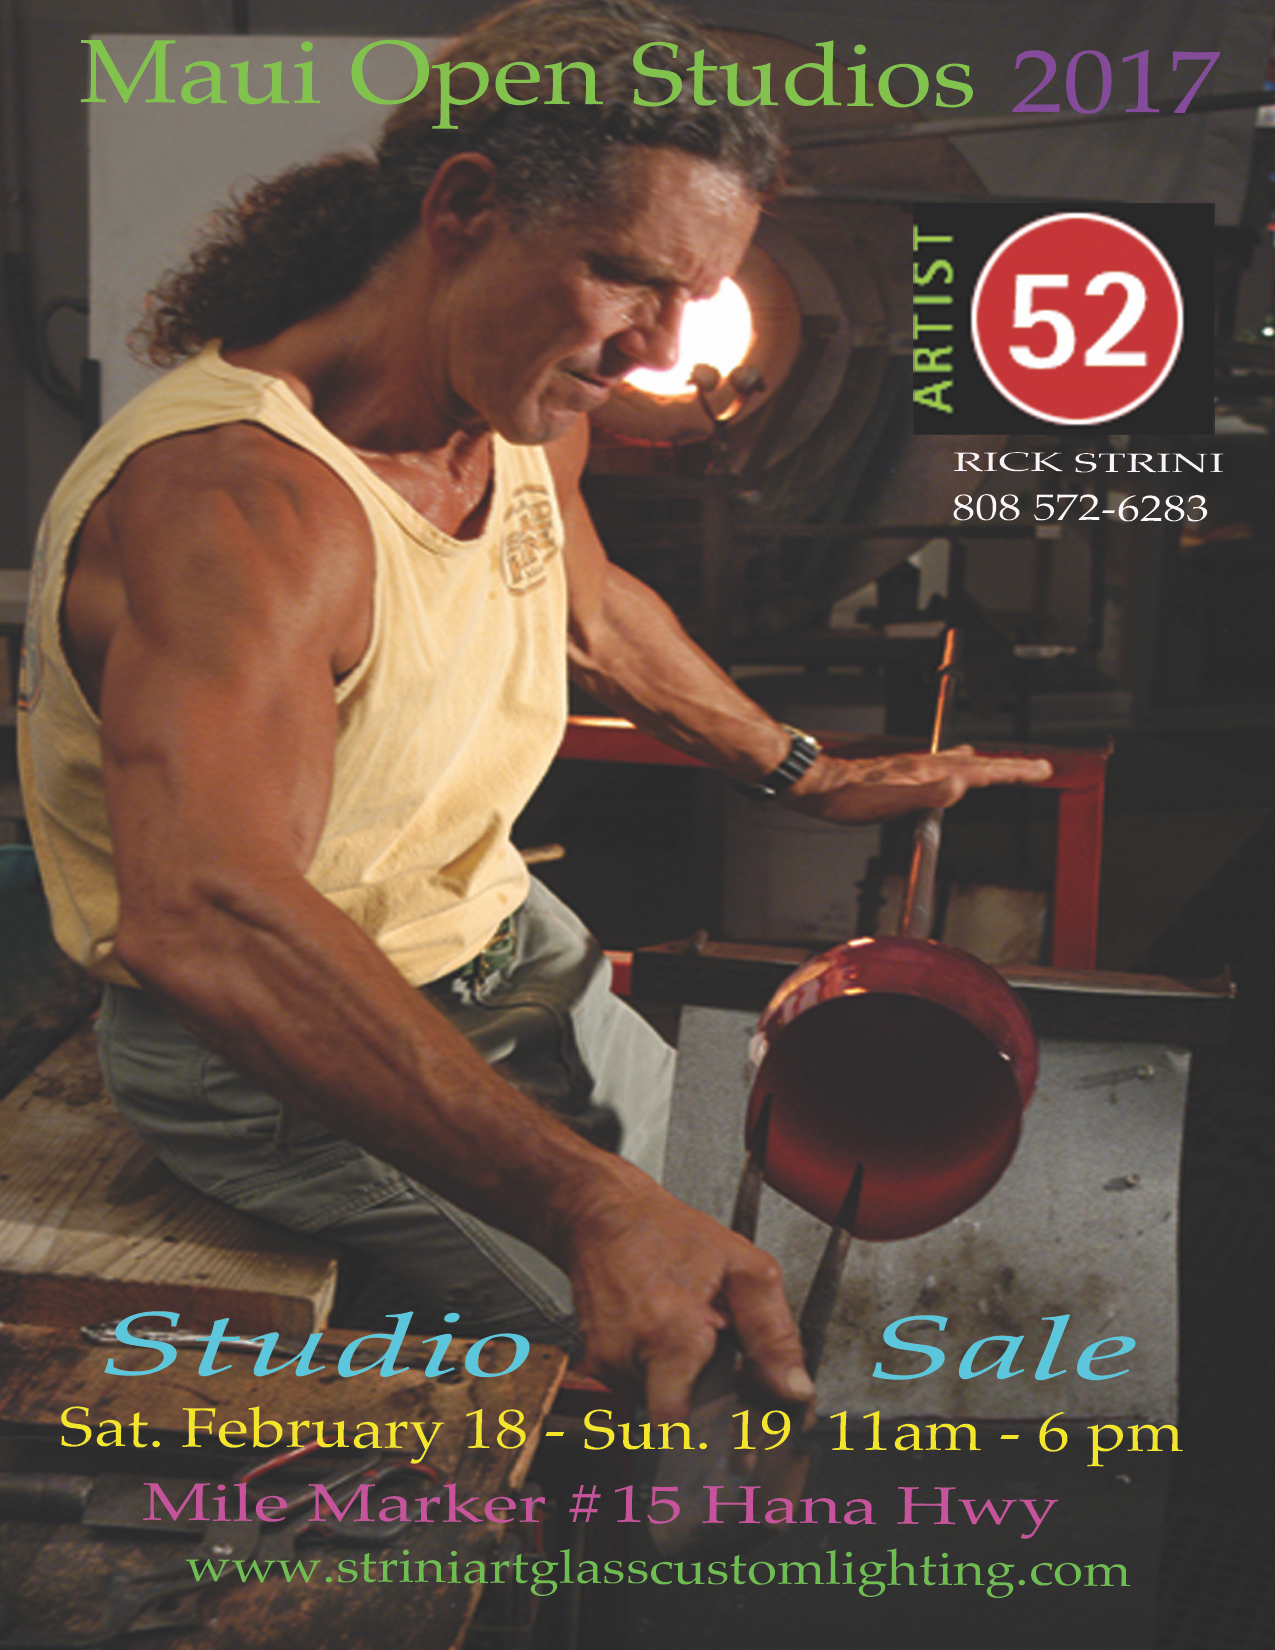 TODAY IS THE LAST DAY FOR US AT MAUI OPEN STUDIOS 2017. COME ON OUT.